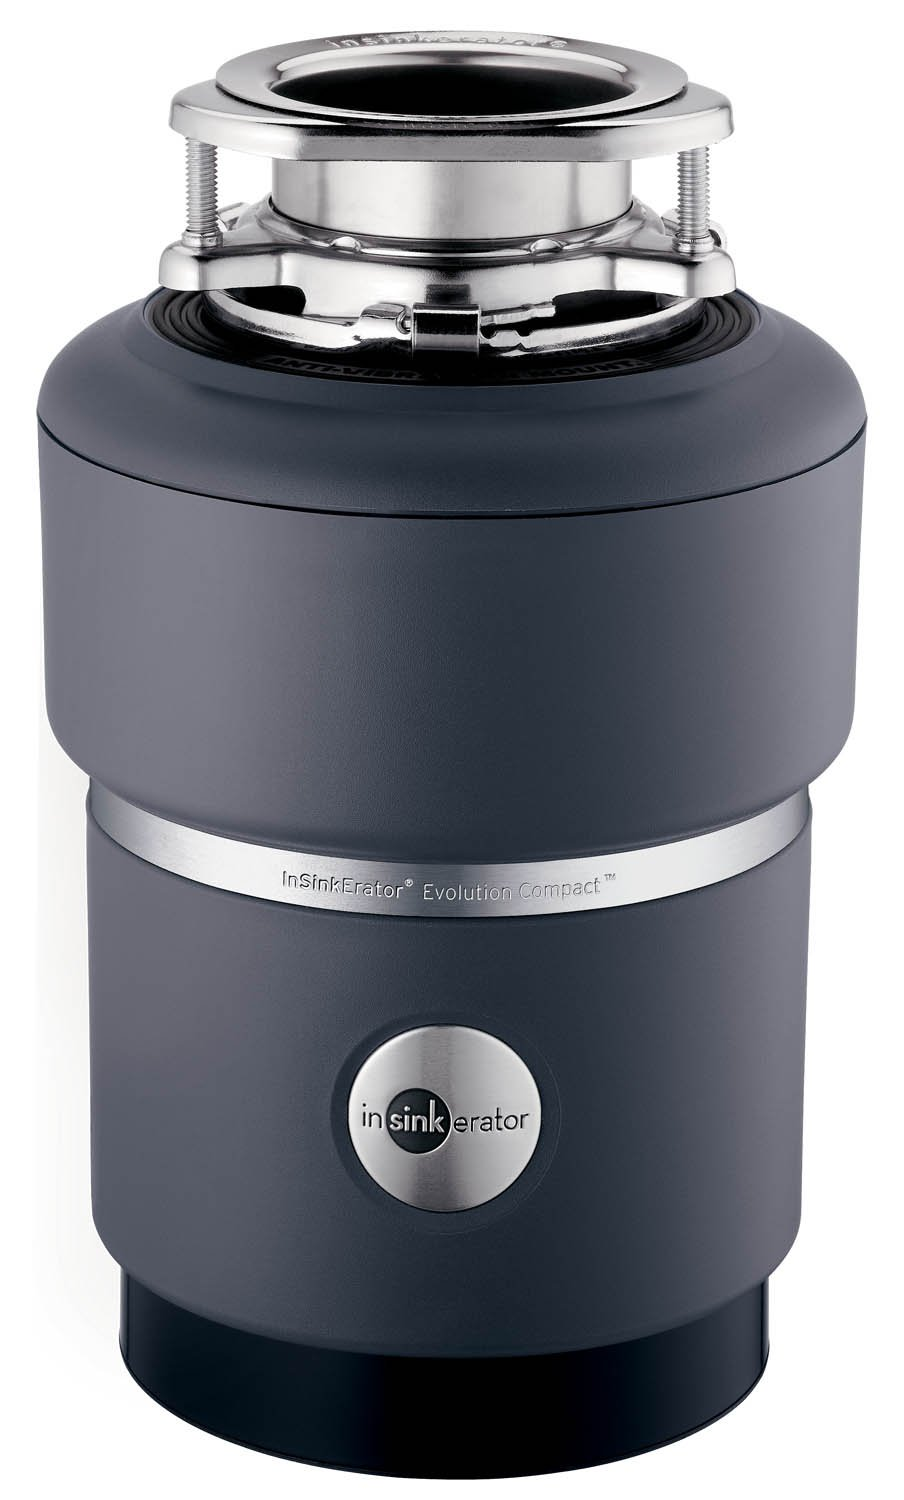 InSinkErator Evolution Compact 3/4 HP Garbage Disposal Review